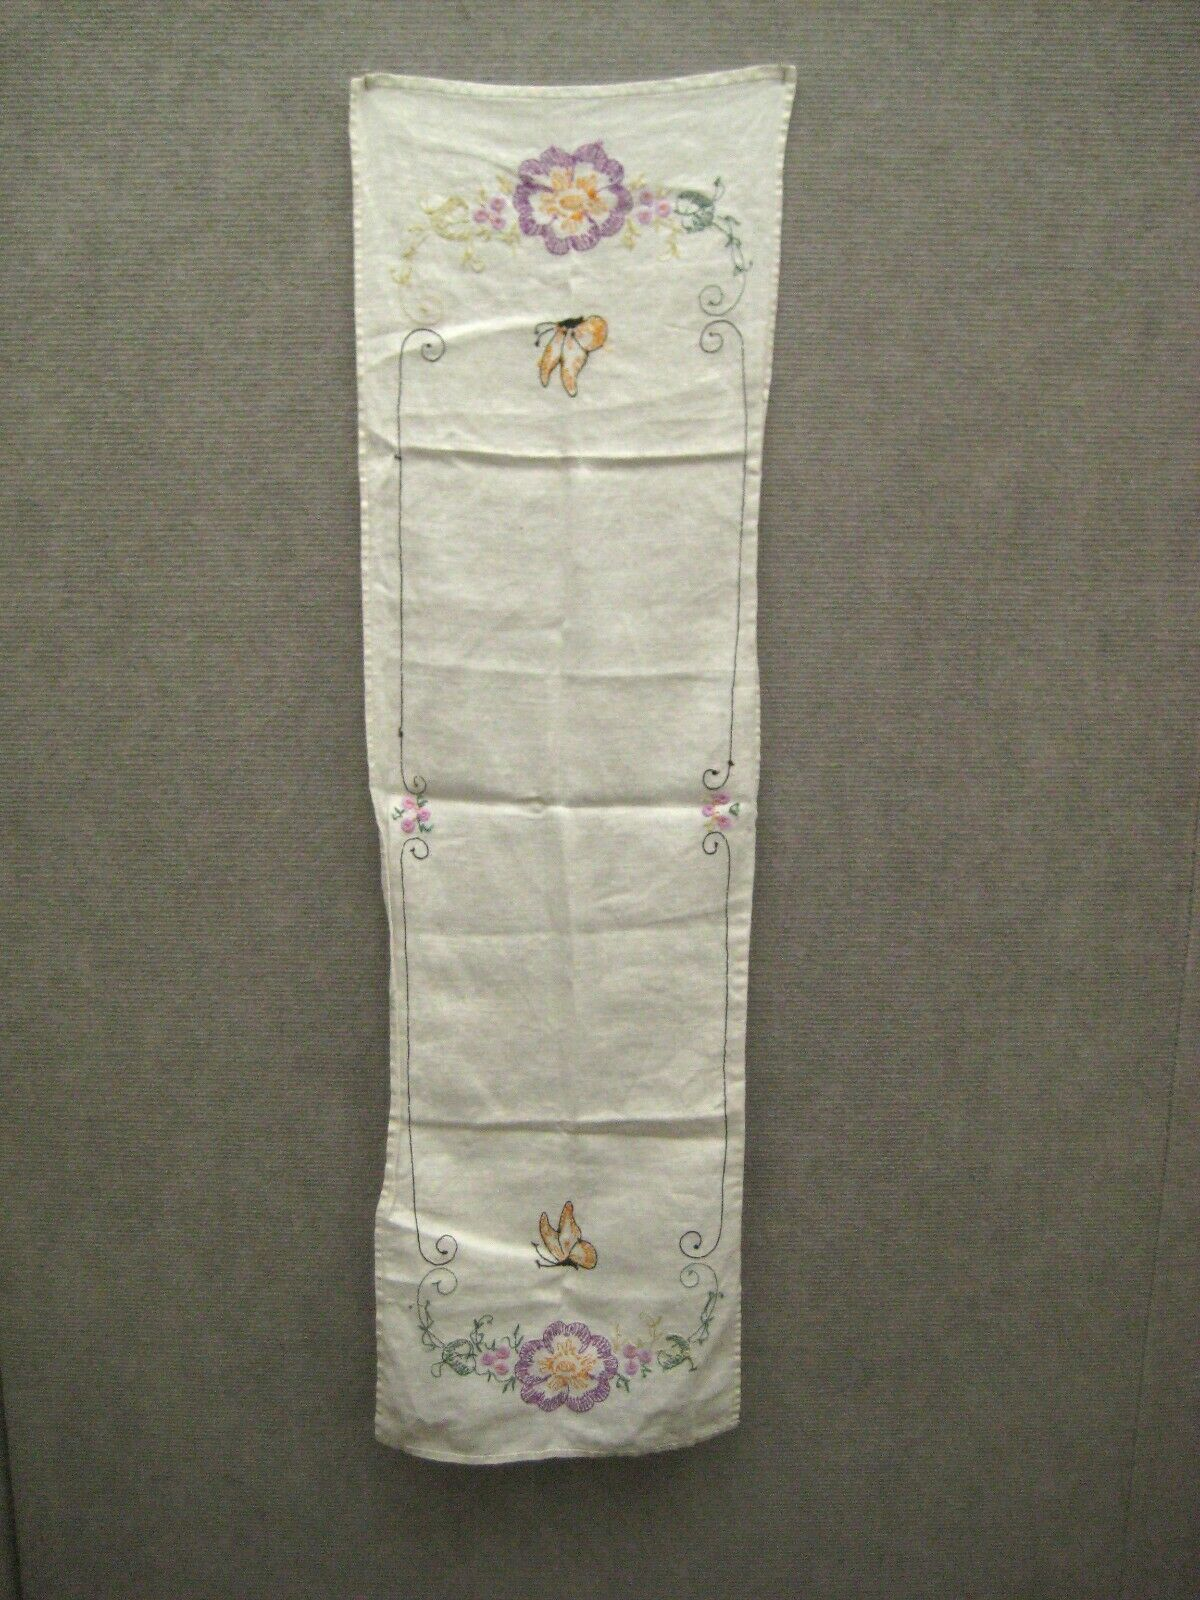 Tea Towel 38 In Kitchen Bathroom Crewel Embroidery Hand Stitch Floral Butterfly image 10